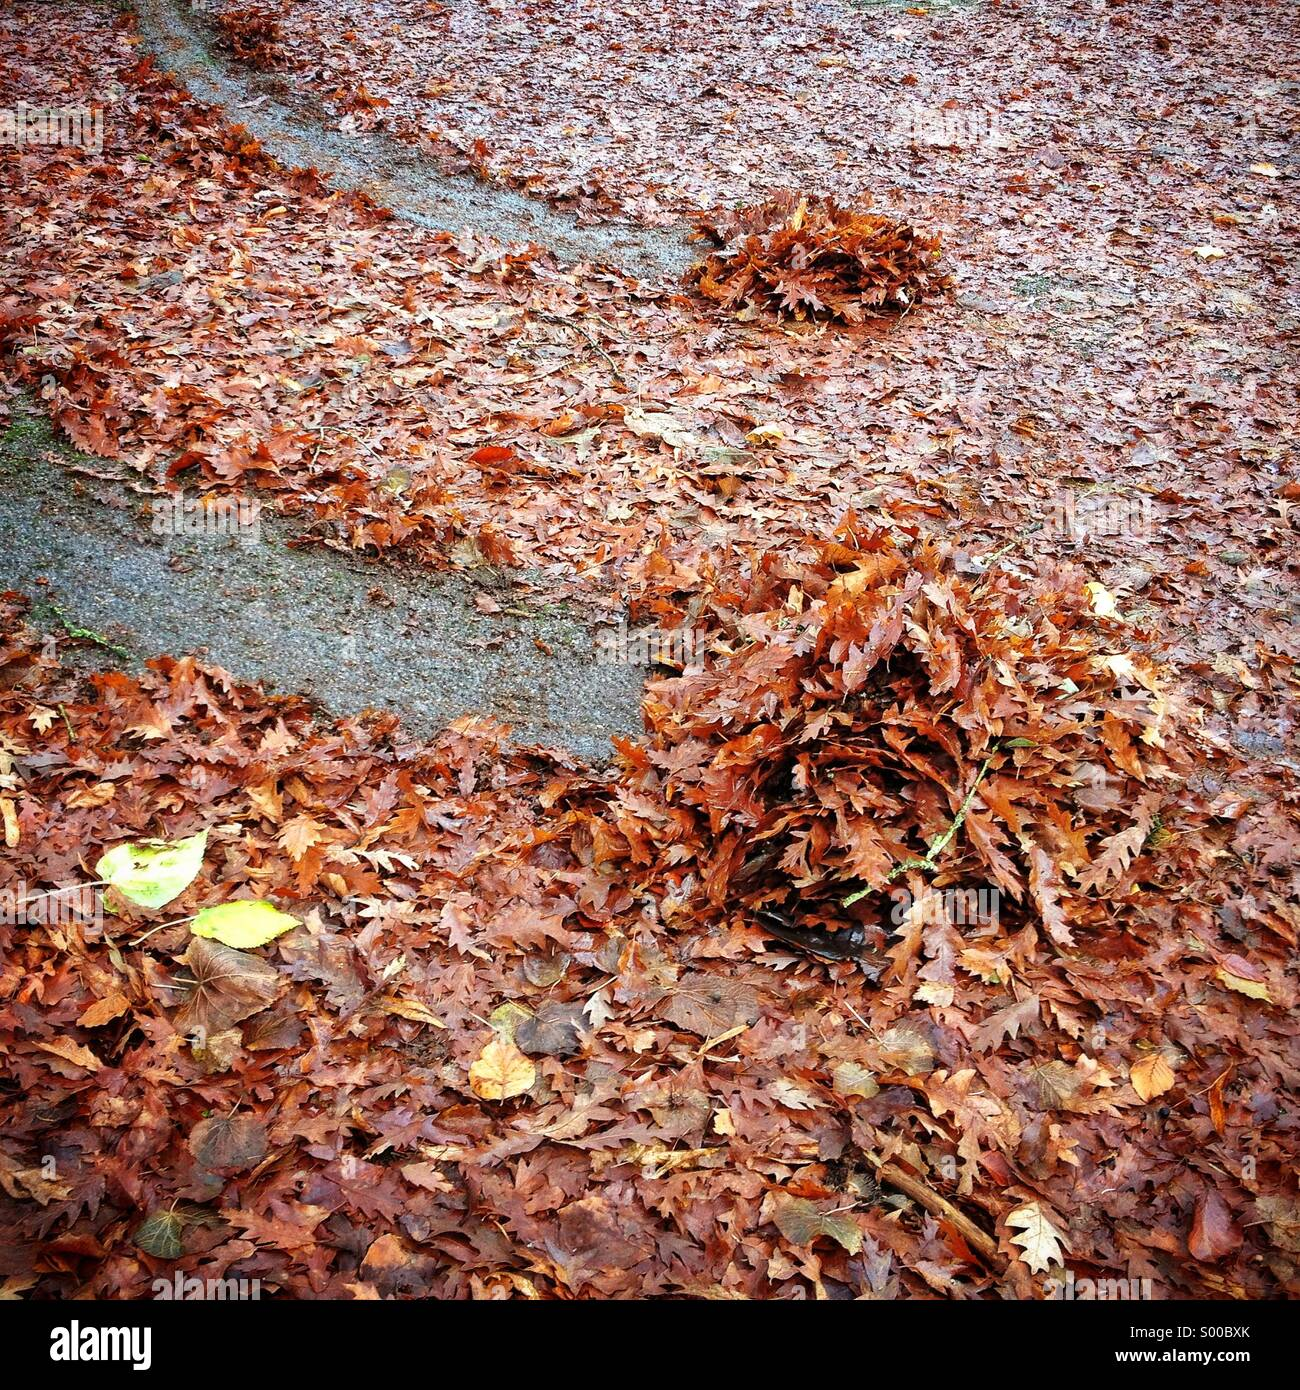 Skid marks in wet leaves - Stock Image